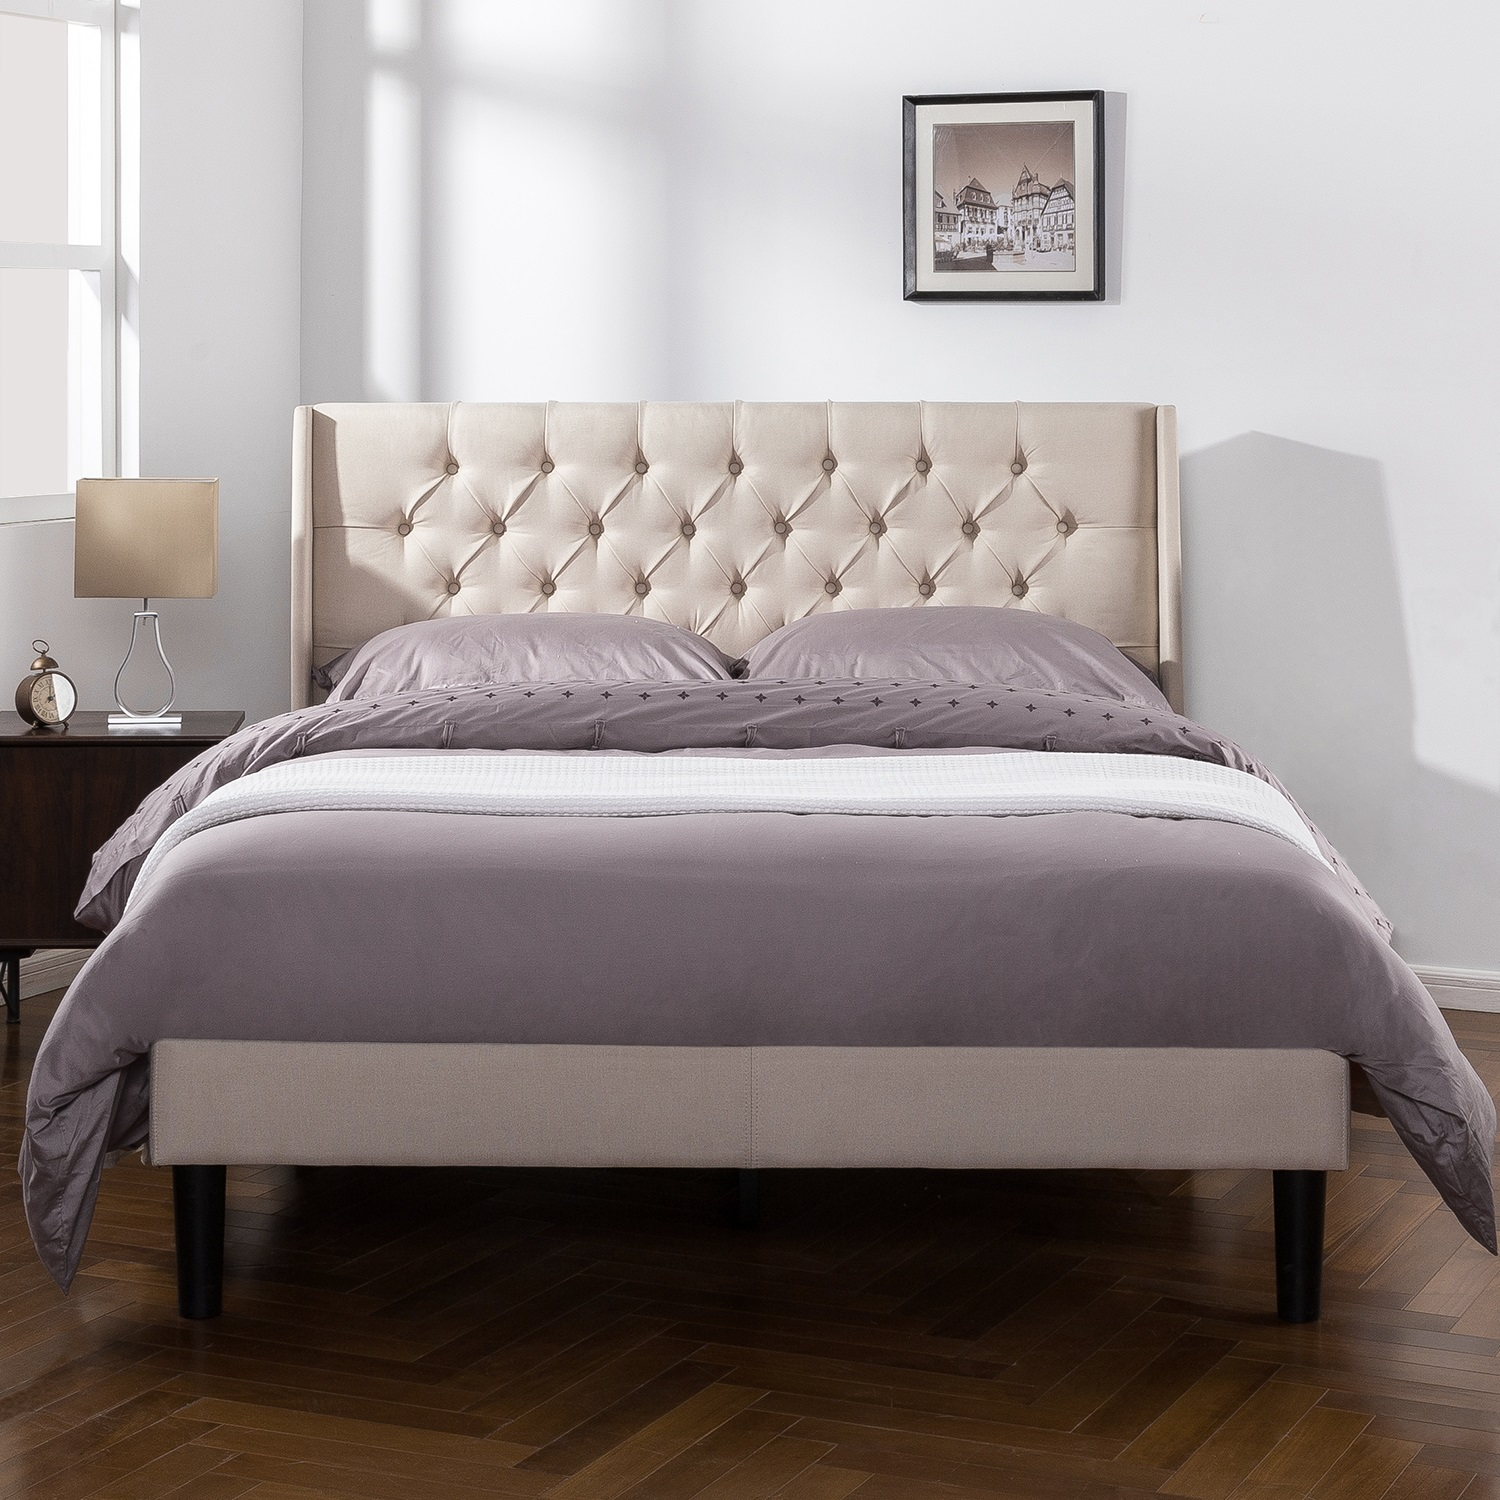 Zinus Upholstered Button Tufted Wingback Platform Bed, Multiple Sizes